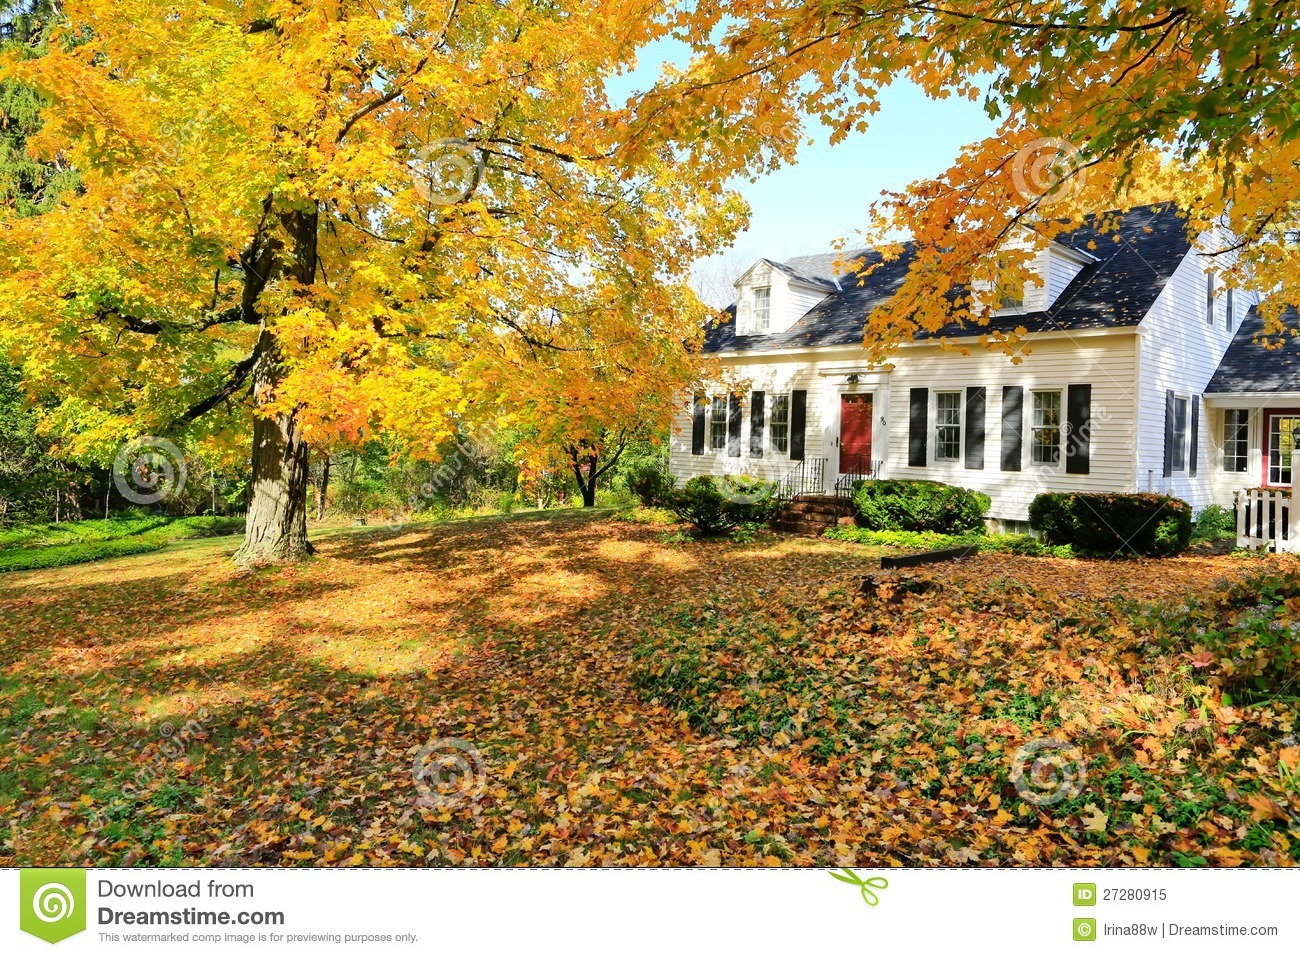 New Hampshire Fall Foliage Wallpaper Classic New England American House Exterior Stock Image